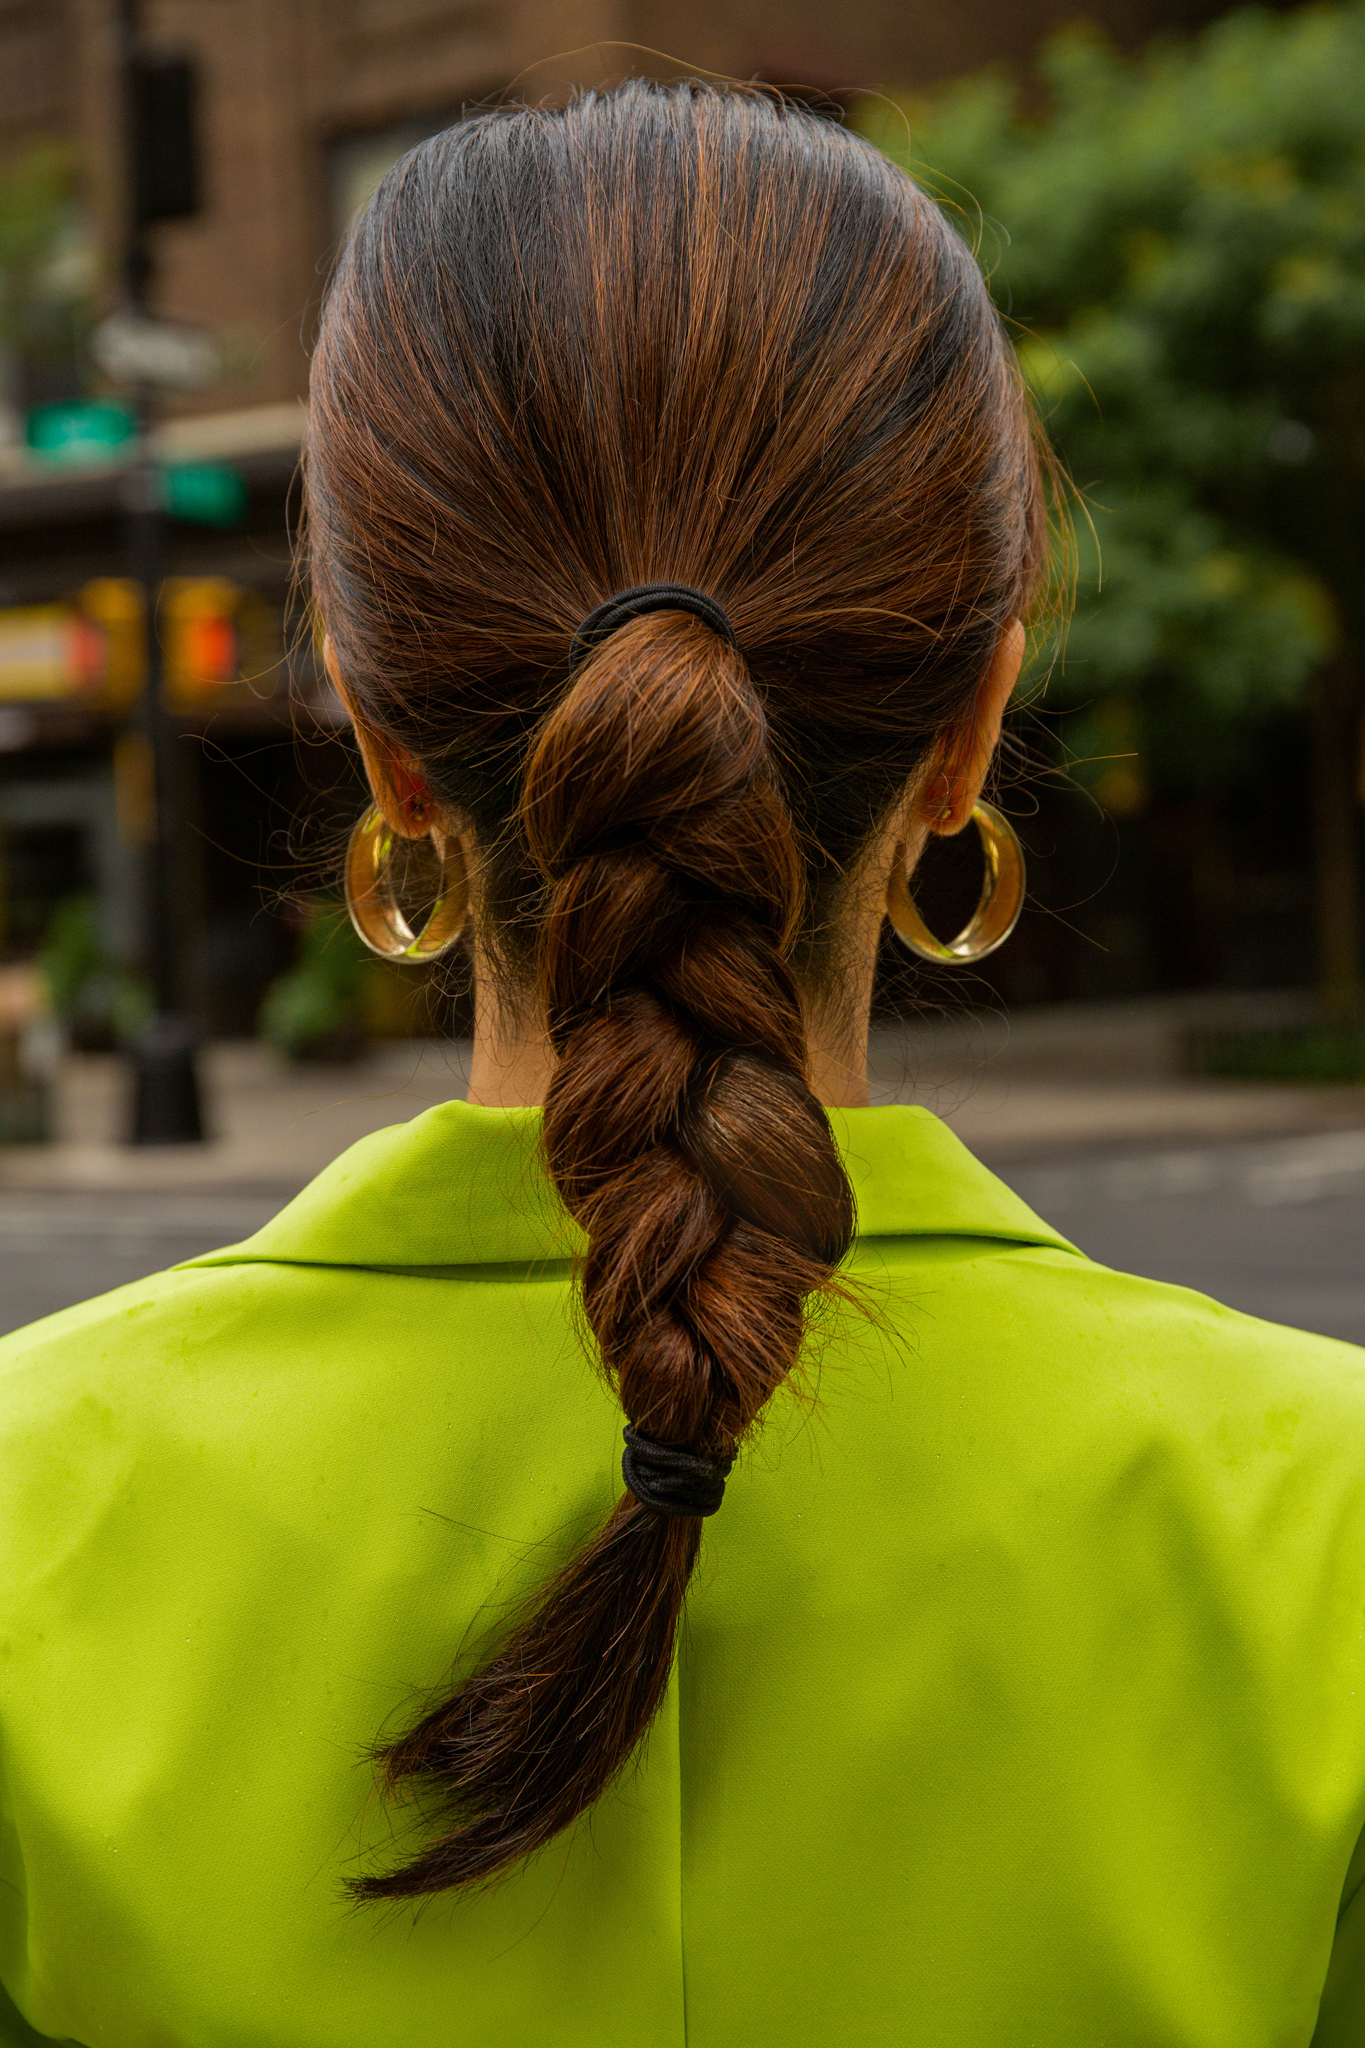 Braided ponytail style